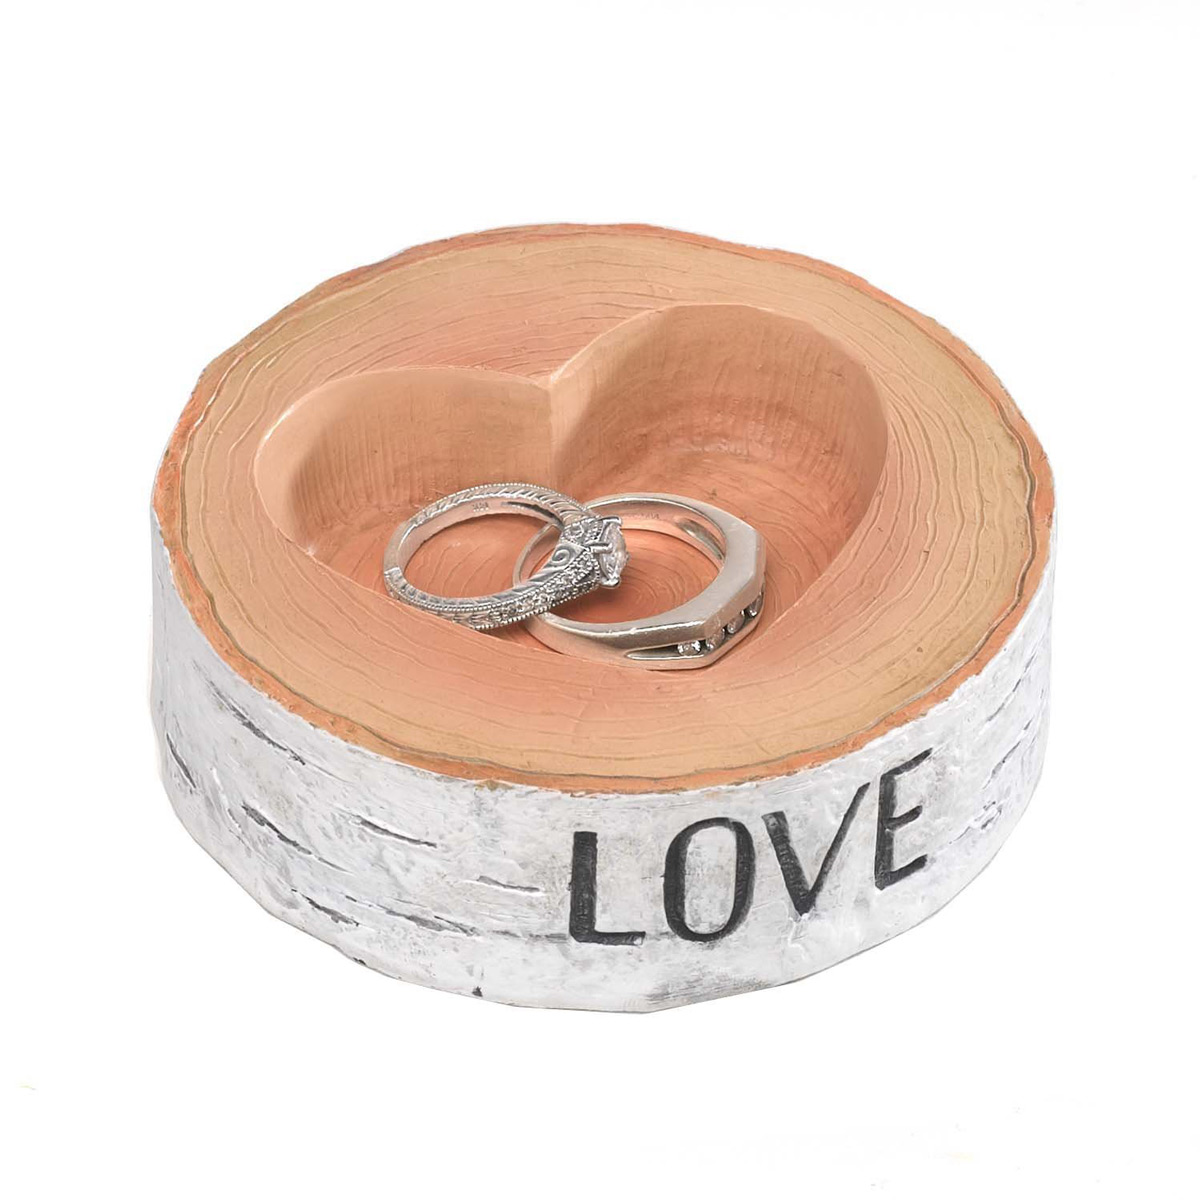 Trunk Shaped Wedding Ring Holder with Interior Heart